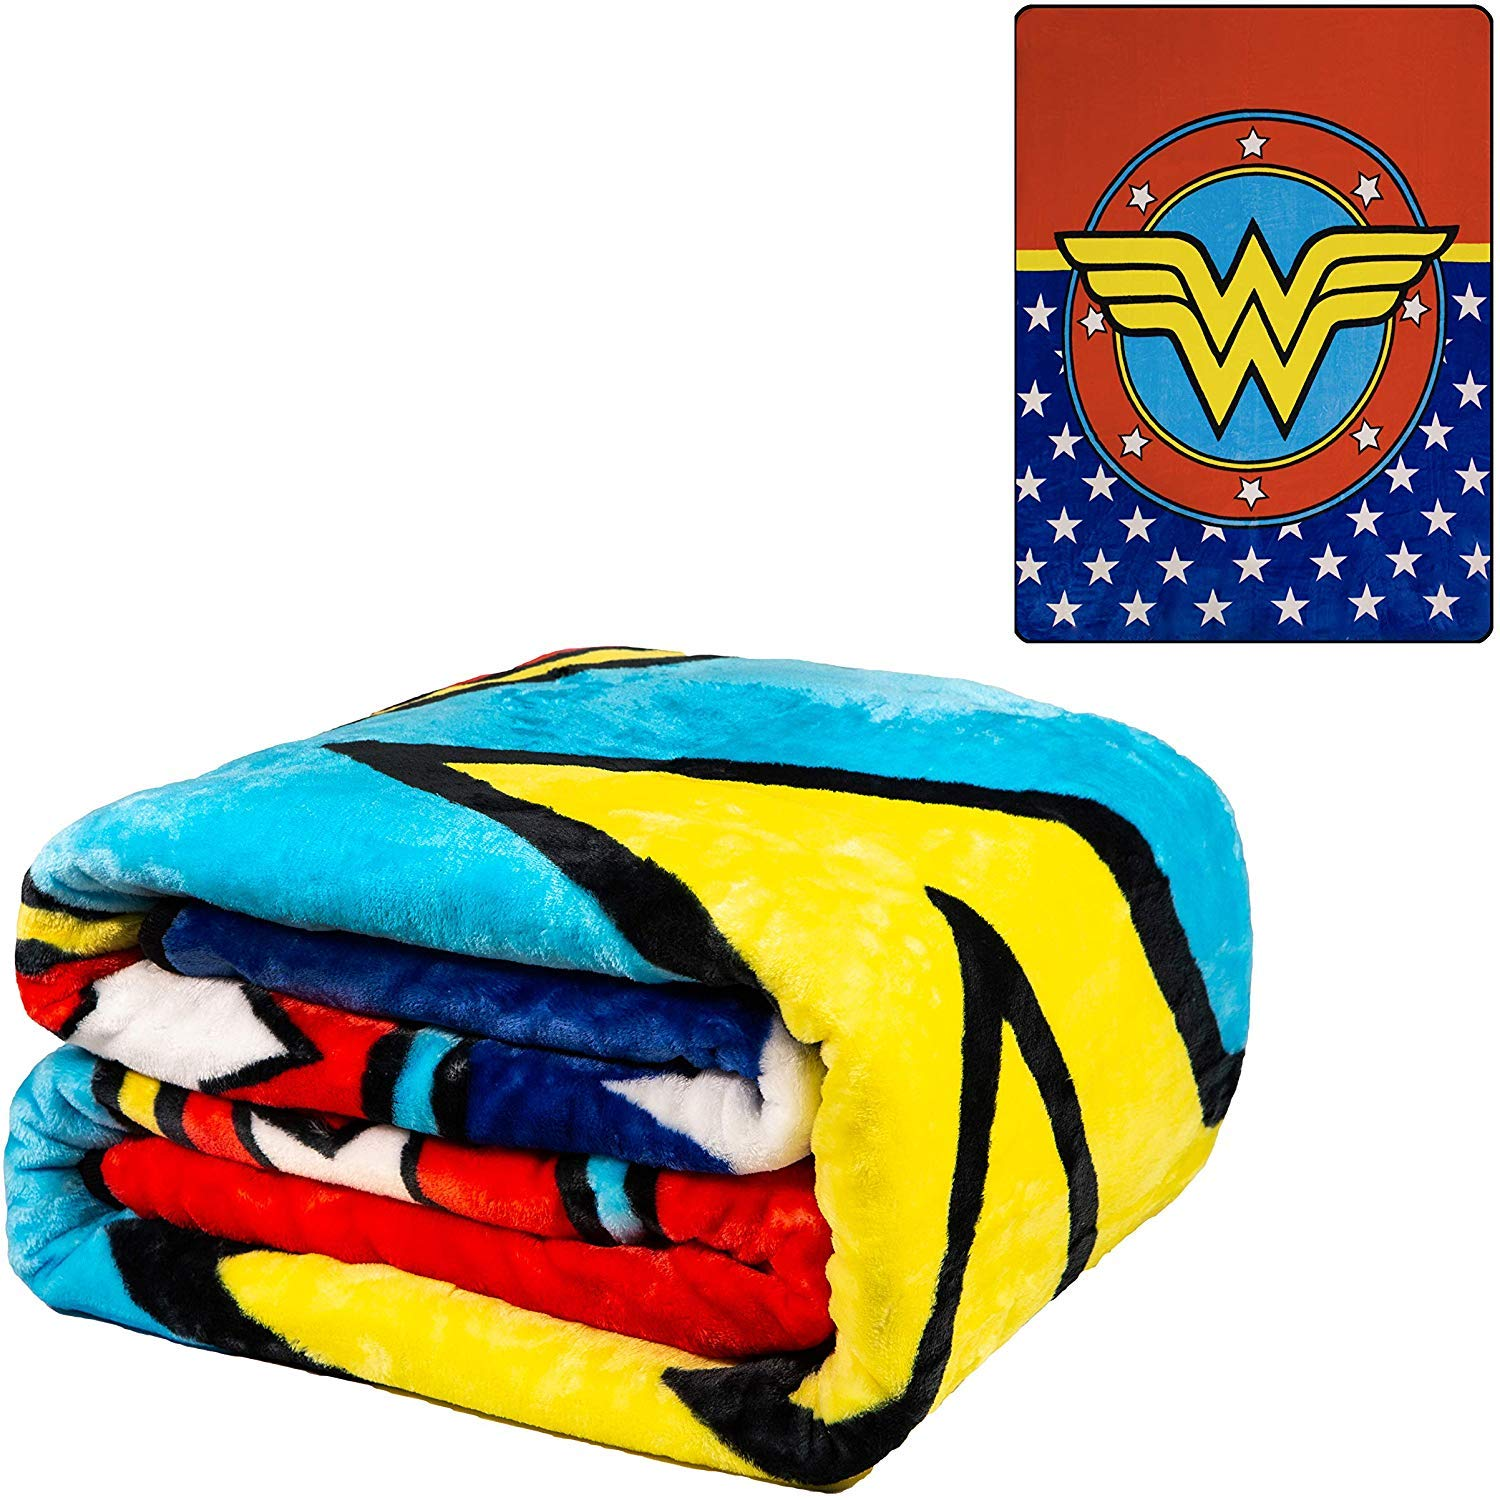 JPI DC Comics Wonder Woman Flannel Queen Plush Blanket - Wonder Woman Shield - Officially Licensed - Super Soft & Thick